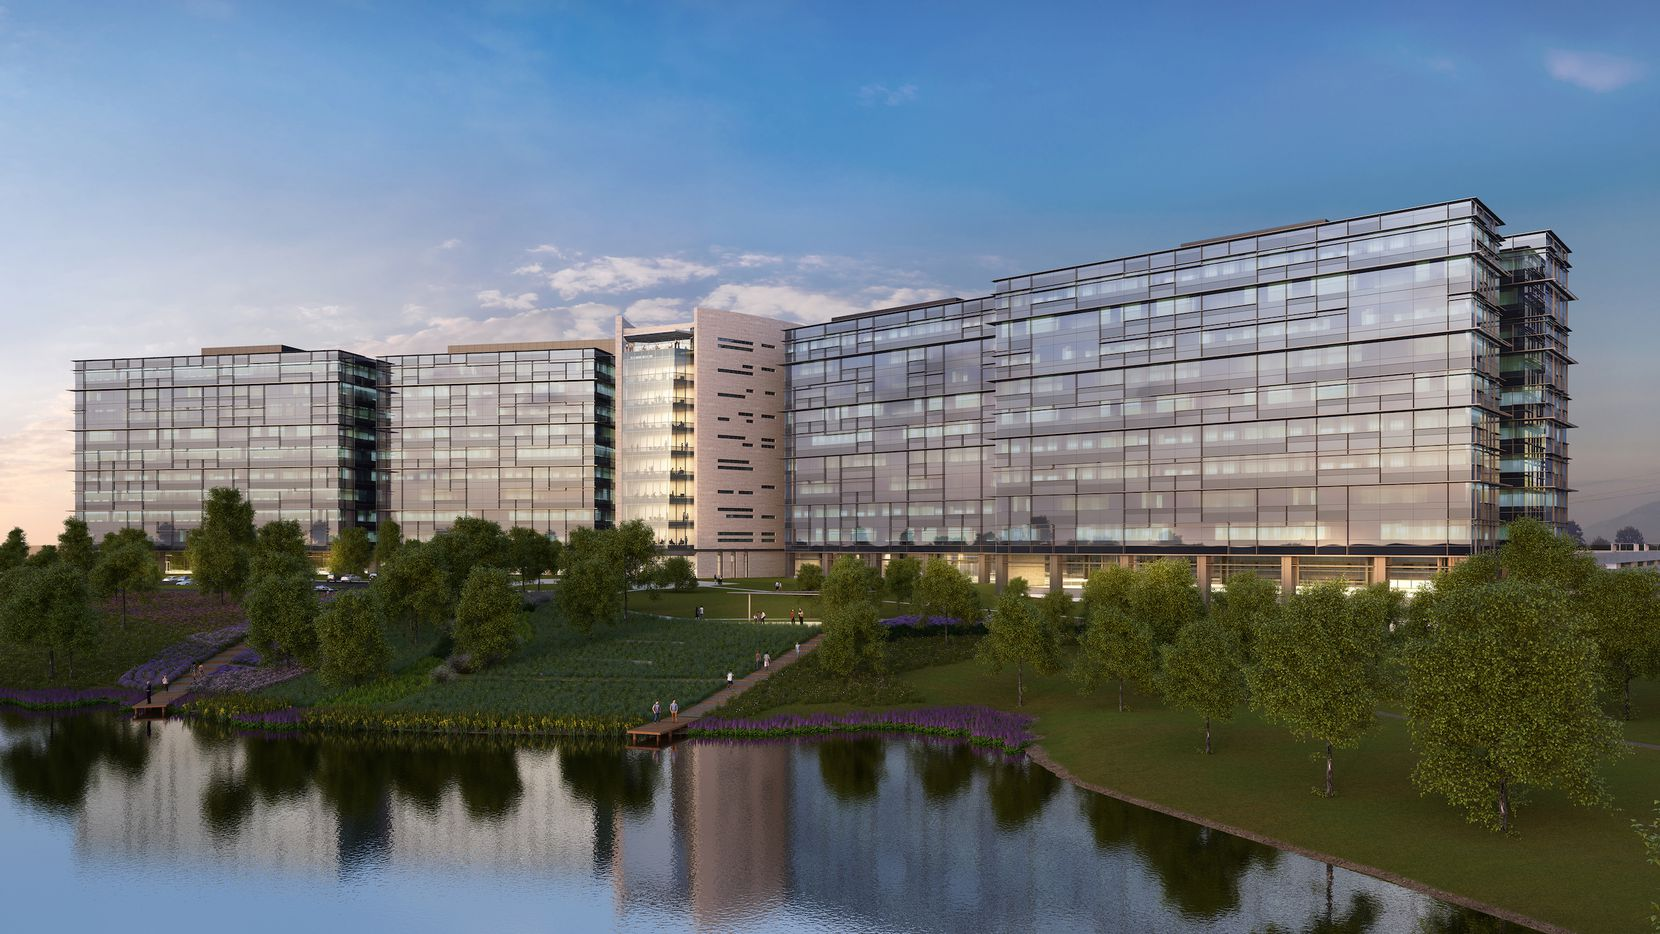 At $213 million, the new Pioneer Natural Resources headquarters in Las Colinas is the most expensive project started in Irving this year.